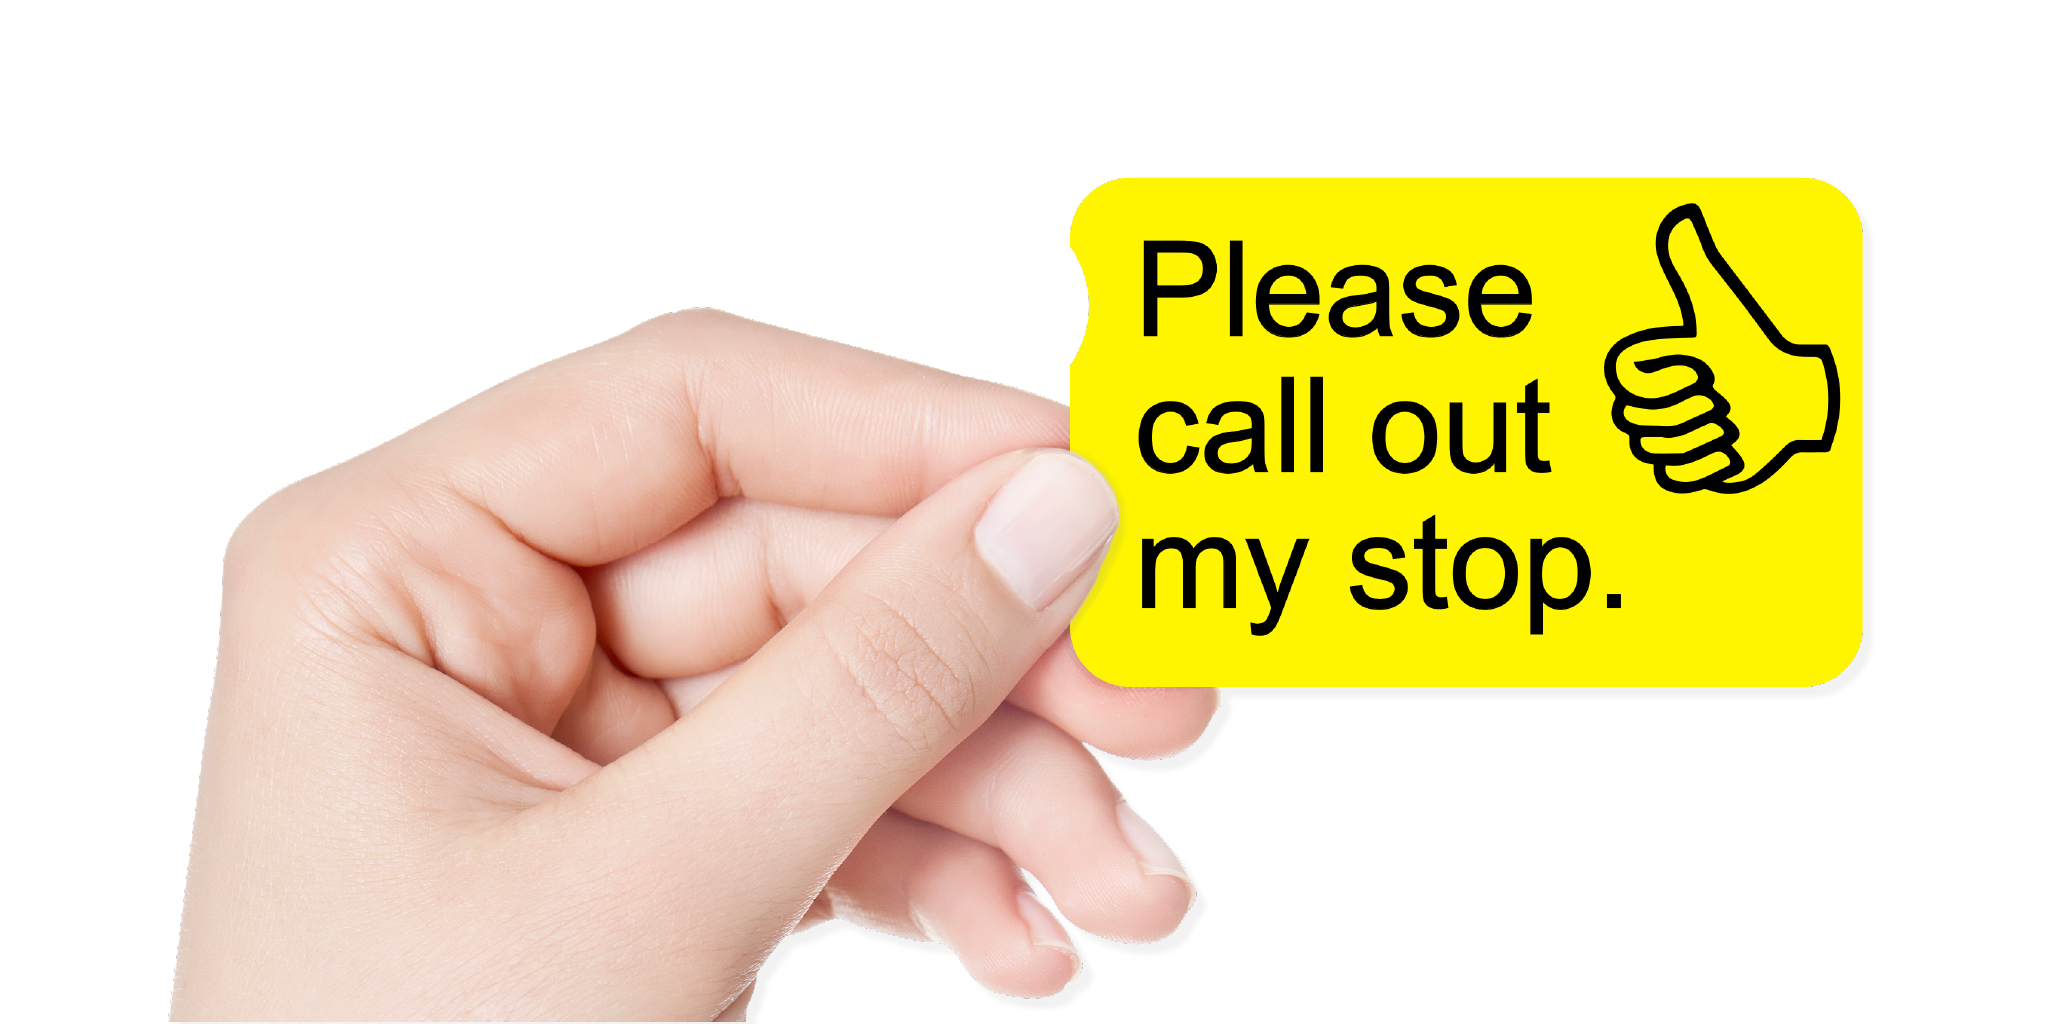 Photo of a hand holding a Helping Hand card reading 'Please call out my stop.'